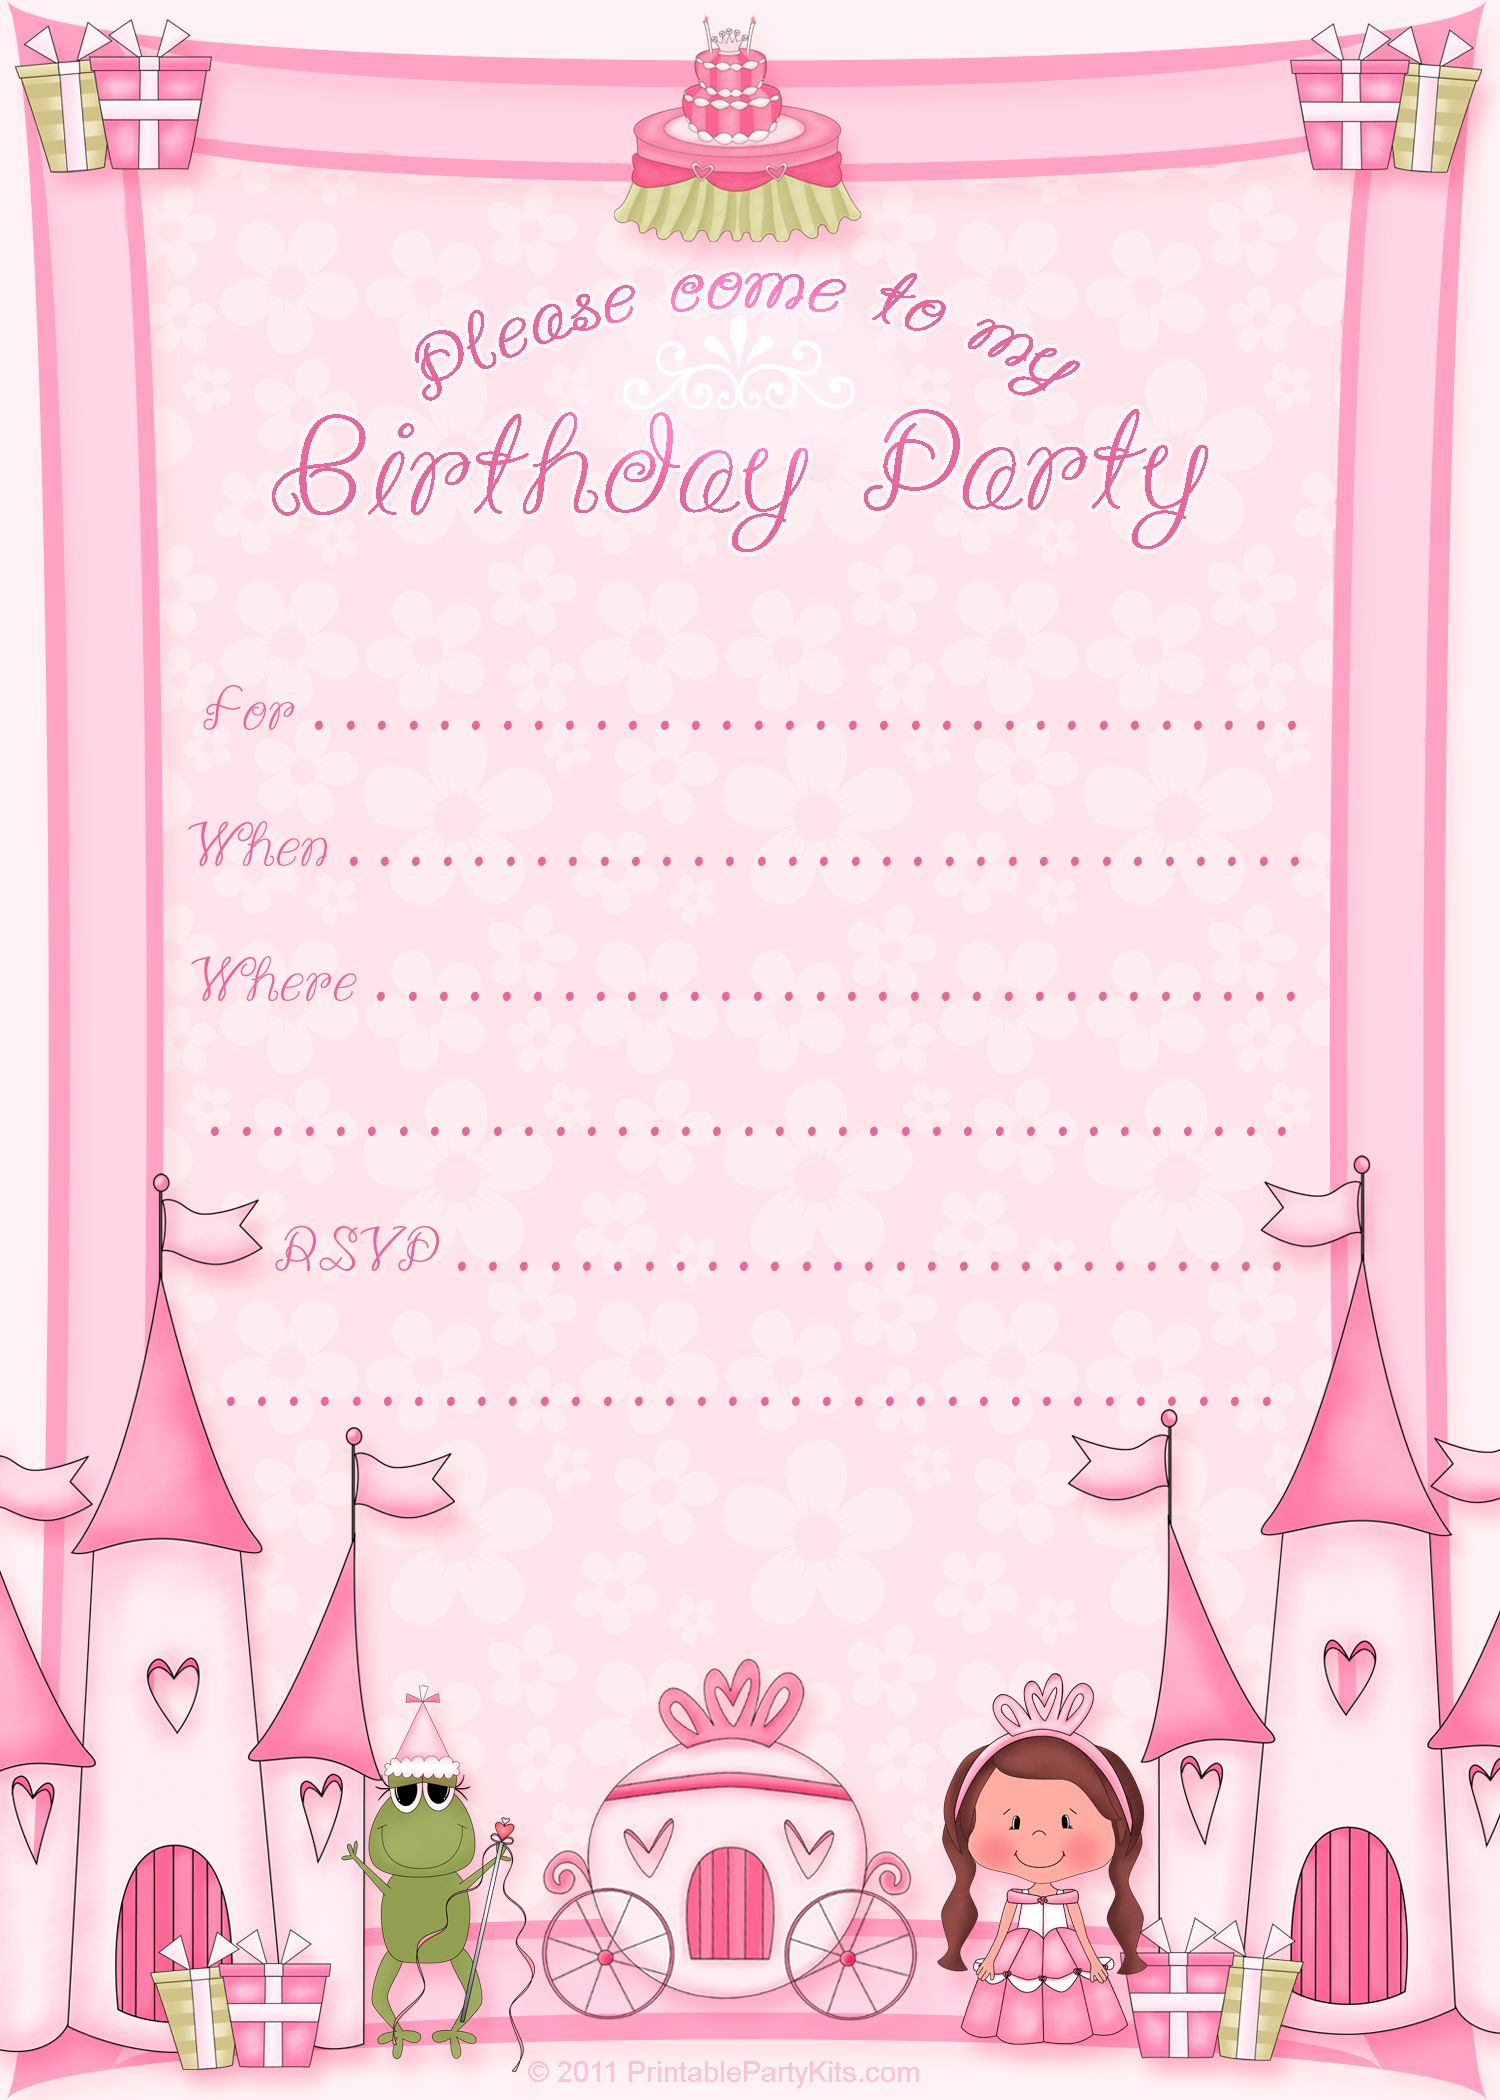 Free printable invitation pinned for kidfolio the parenting mobile free printable invitation pinned for kidfolio the parenting mobile app that makes sharing a snap stopboris